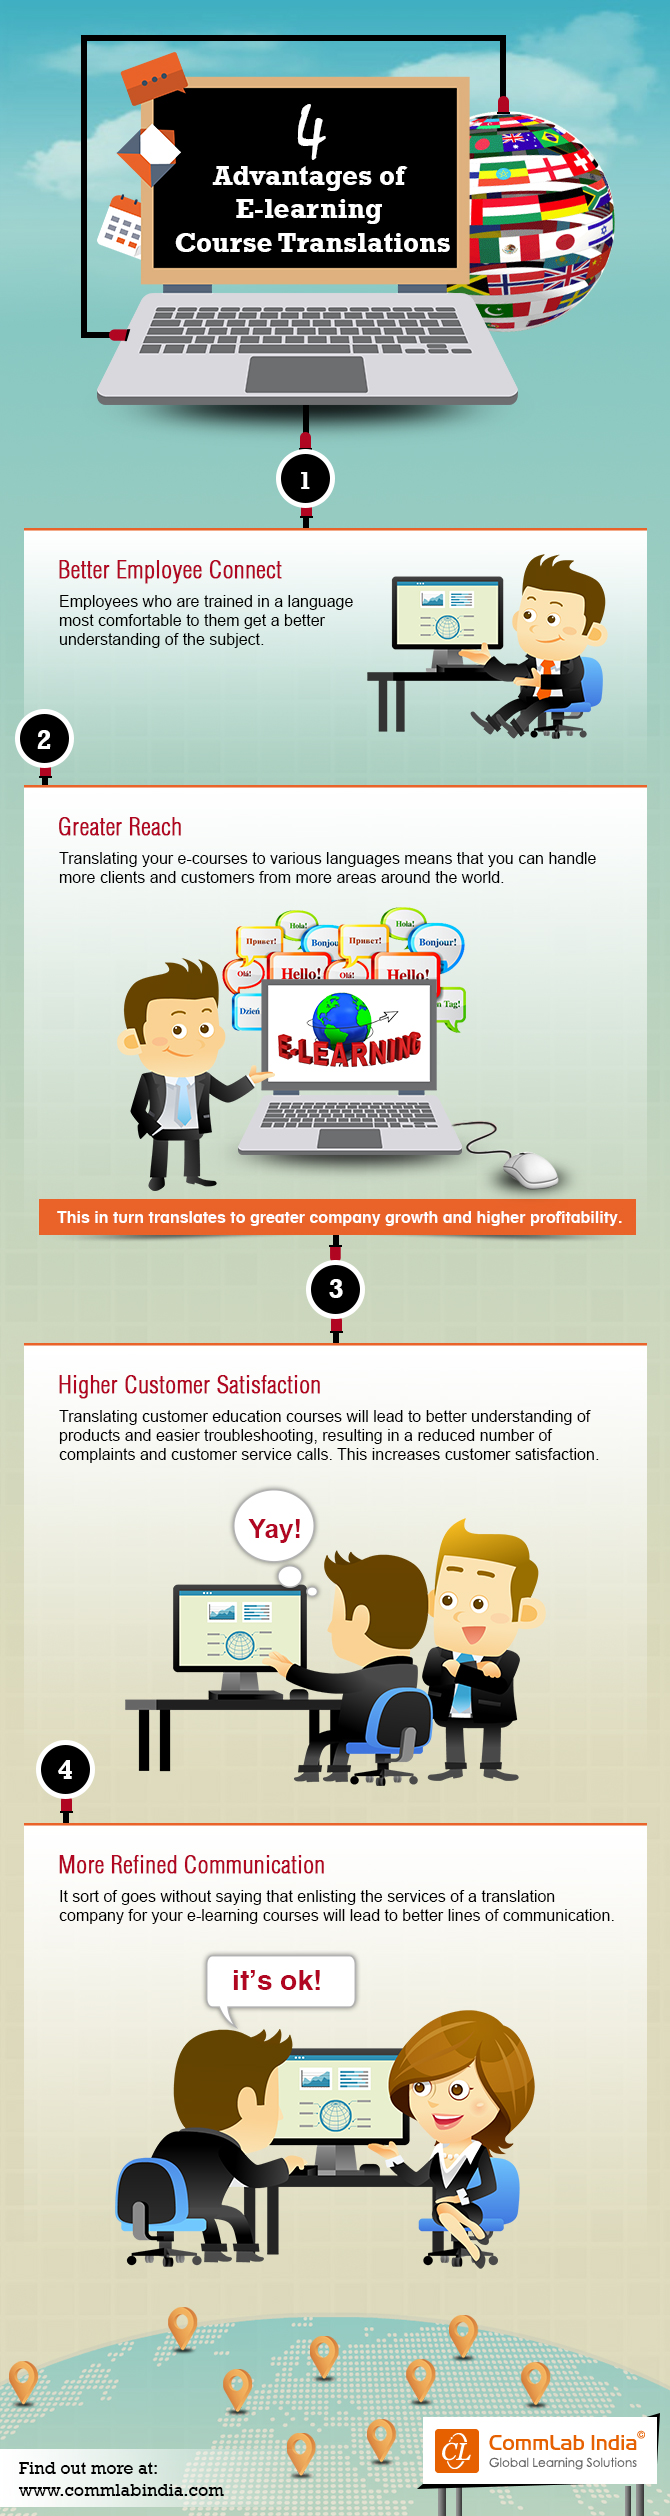 4 Advantages of E-learning Course Translations [Infographic]